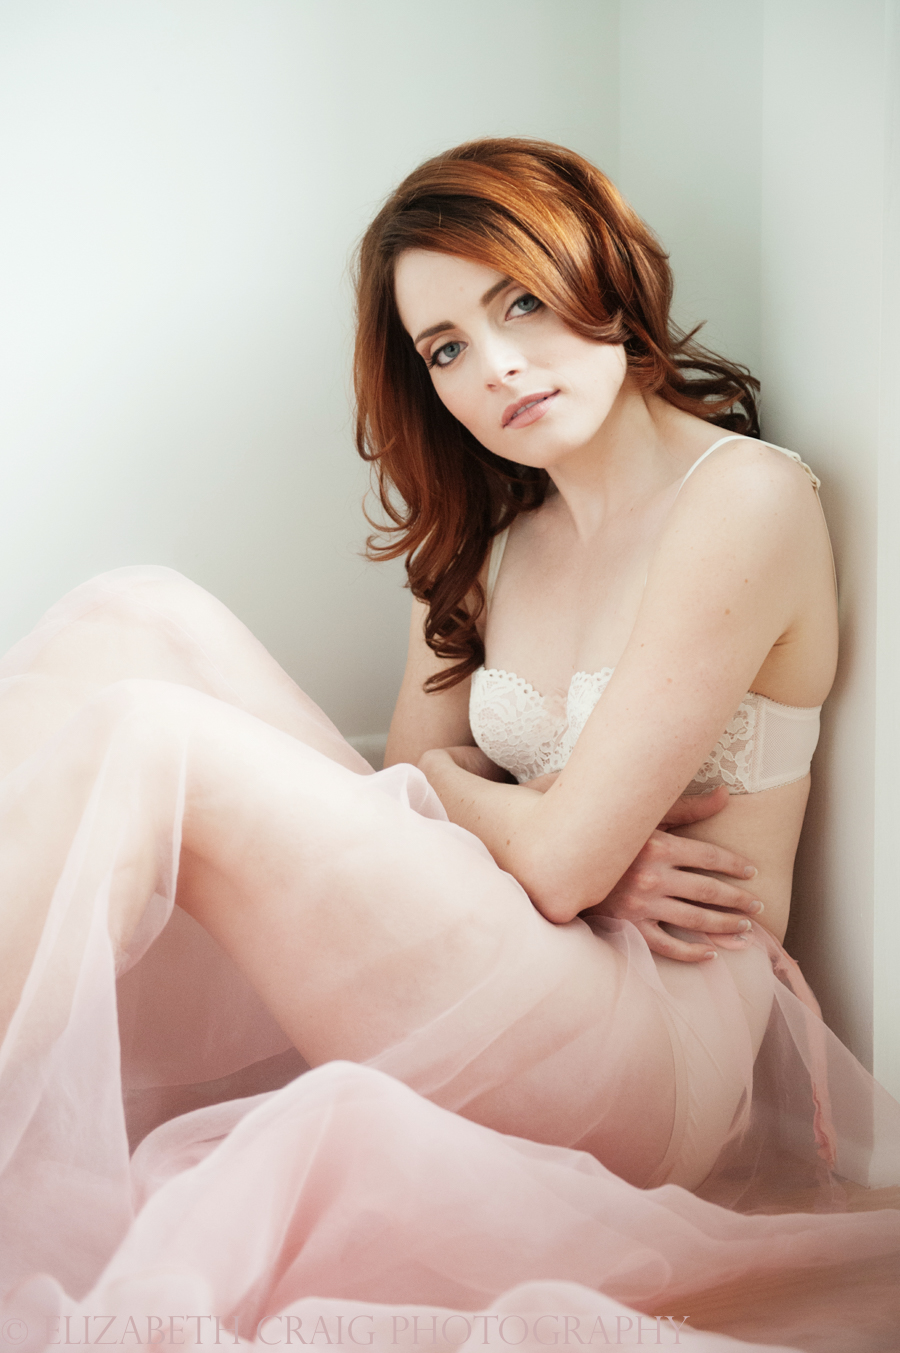 Pittsburgh Before & After Beauty Boudoir Photography-17